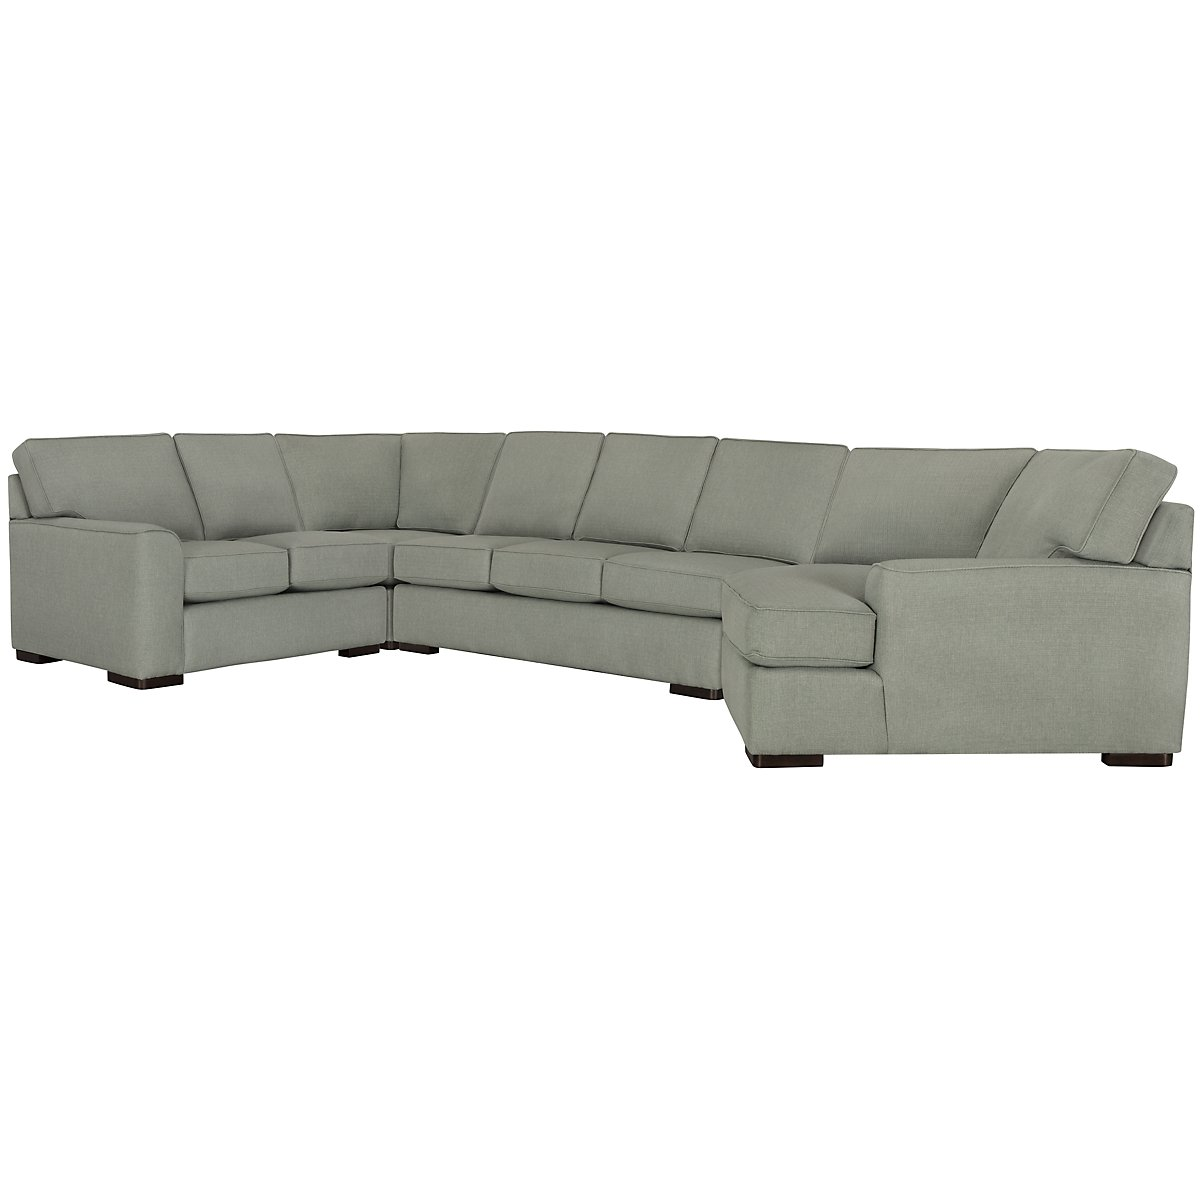 Austin Green Fabric Right Cuddler Innerspring Sleeper Sectional